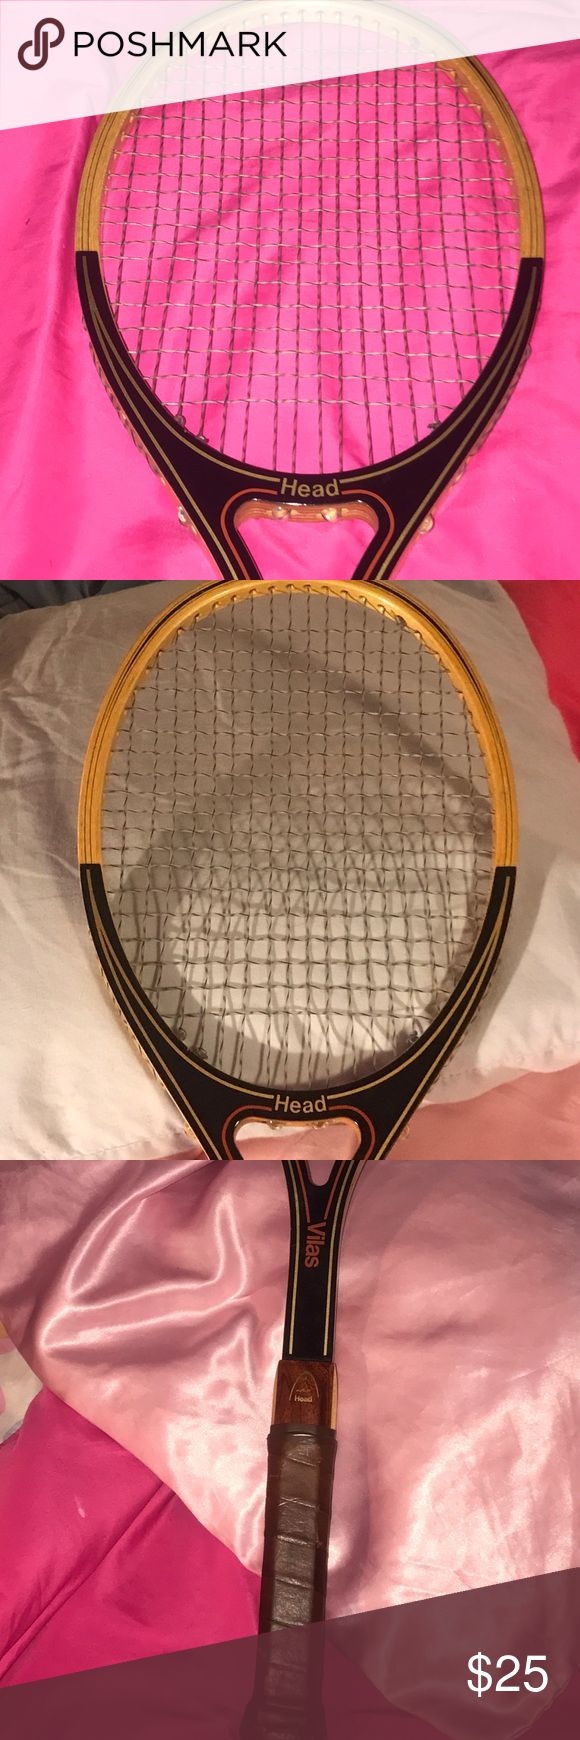 Head Tennis Racket Beautiful never used Tennis Racket from HEAD AMF Other